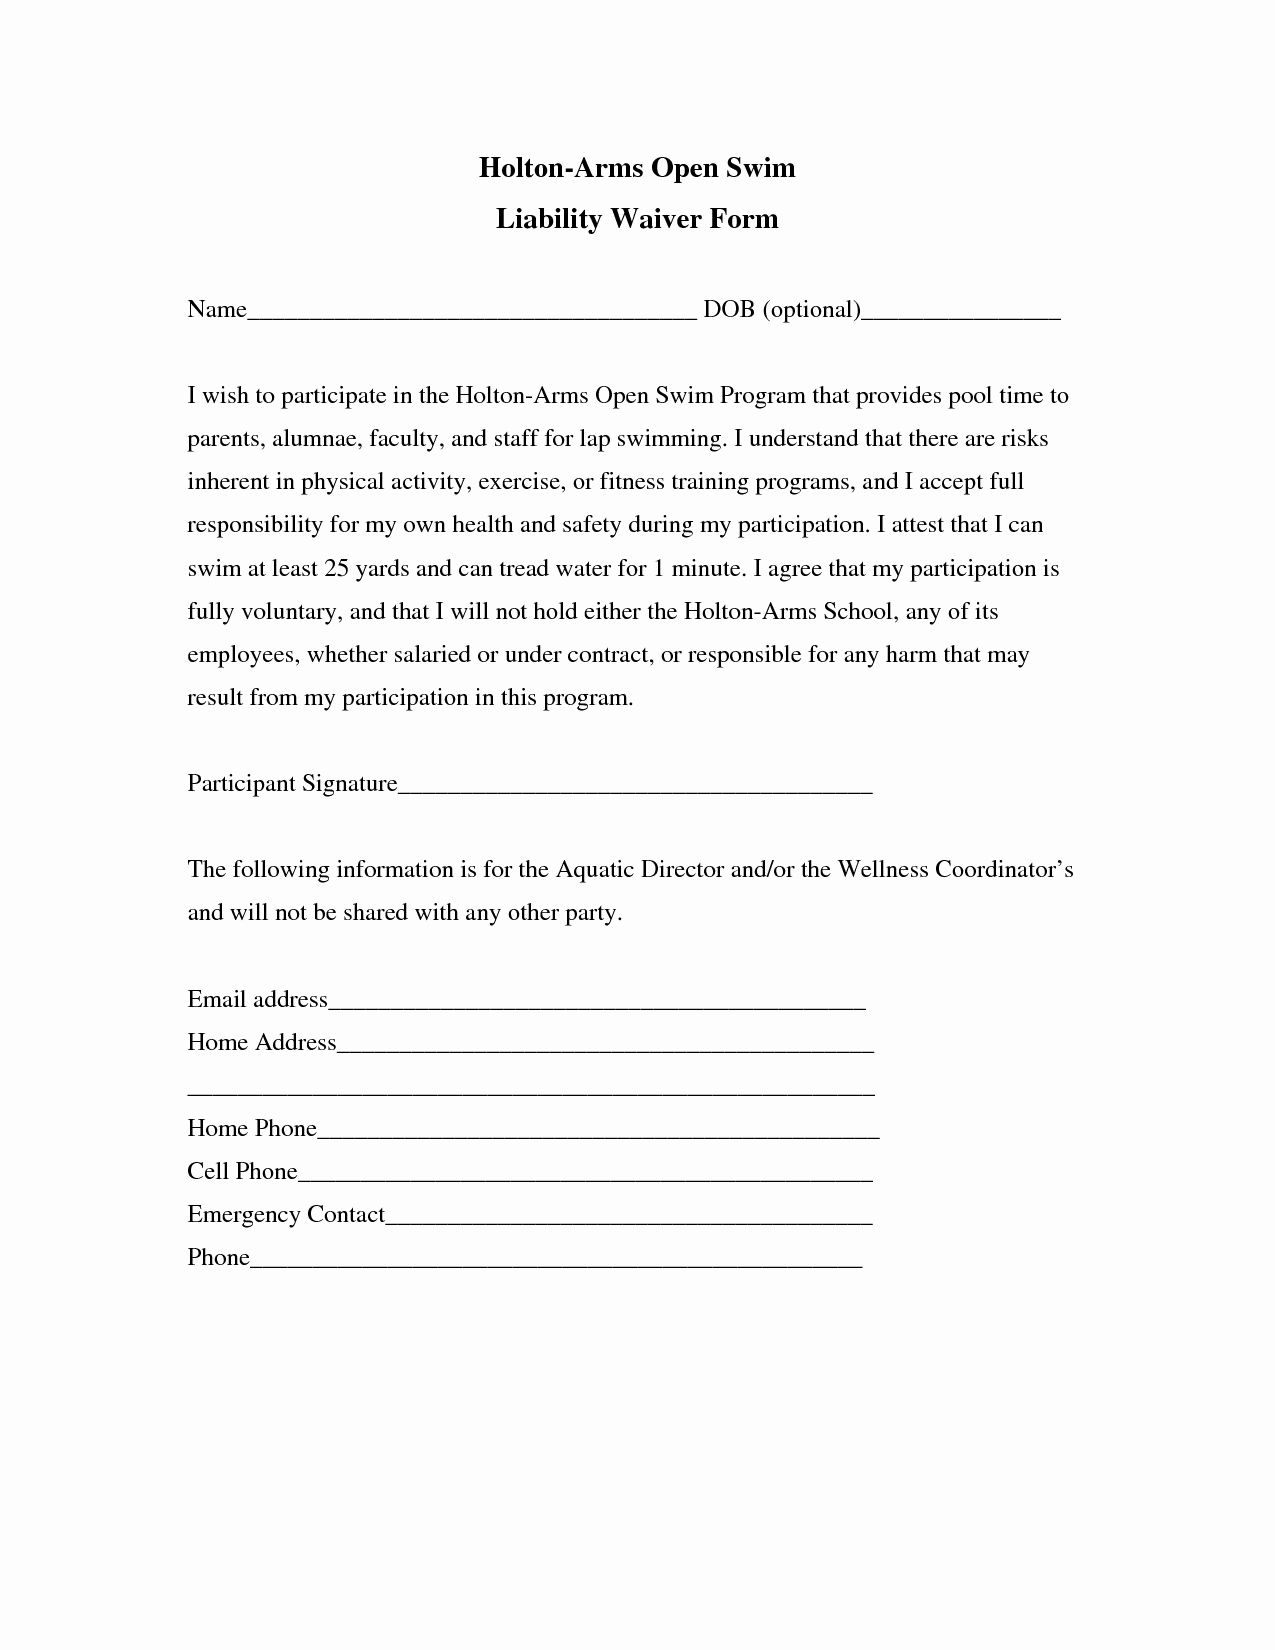 Release Of Liability form Template Awesome Liability Insurance Liability Insurance Waiver Template